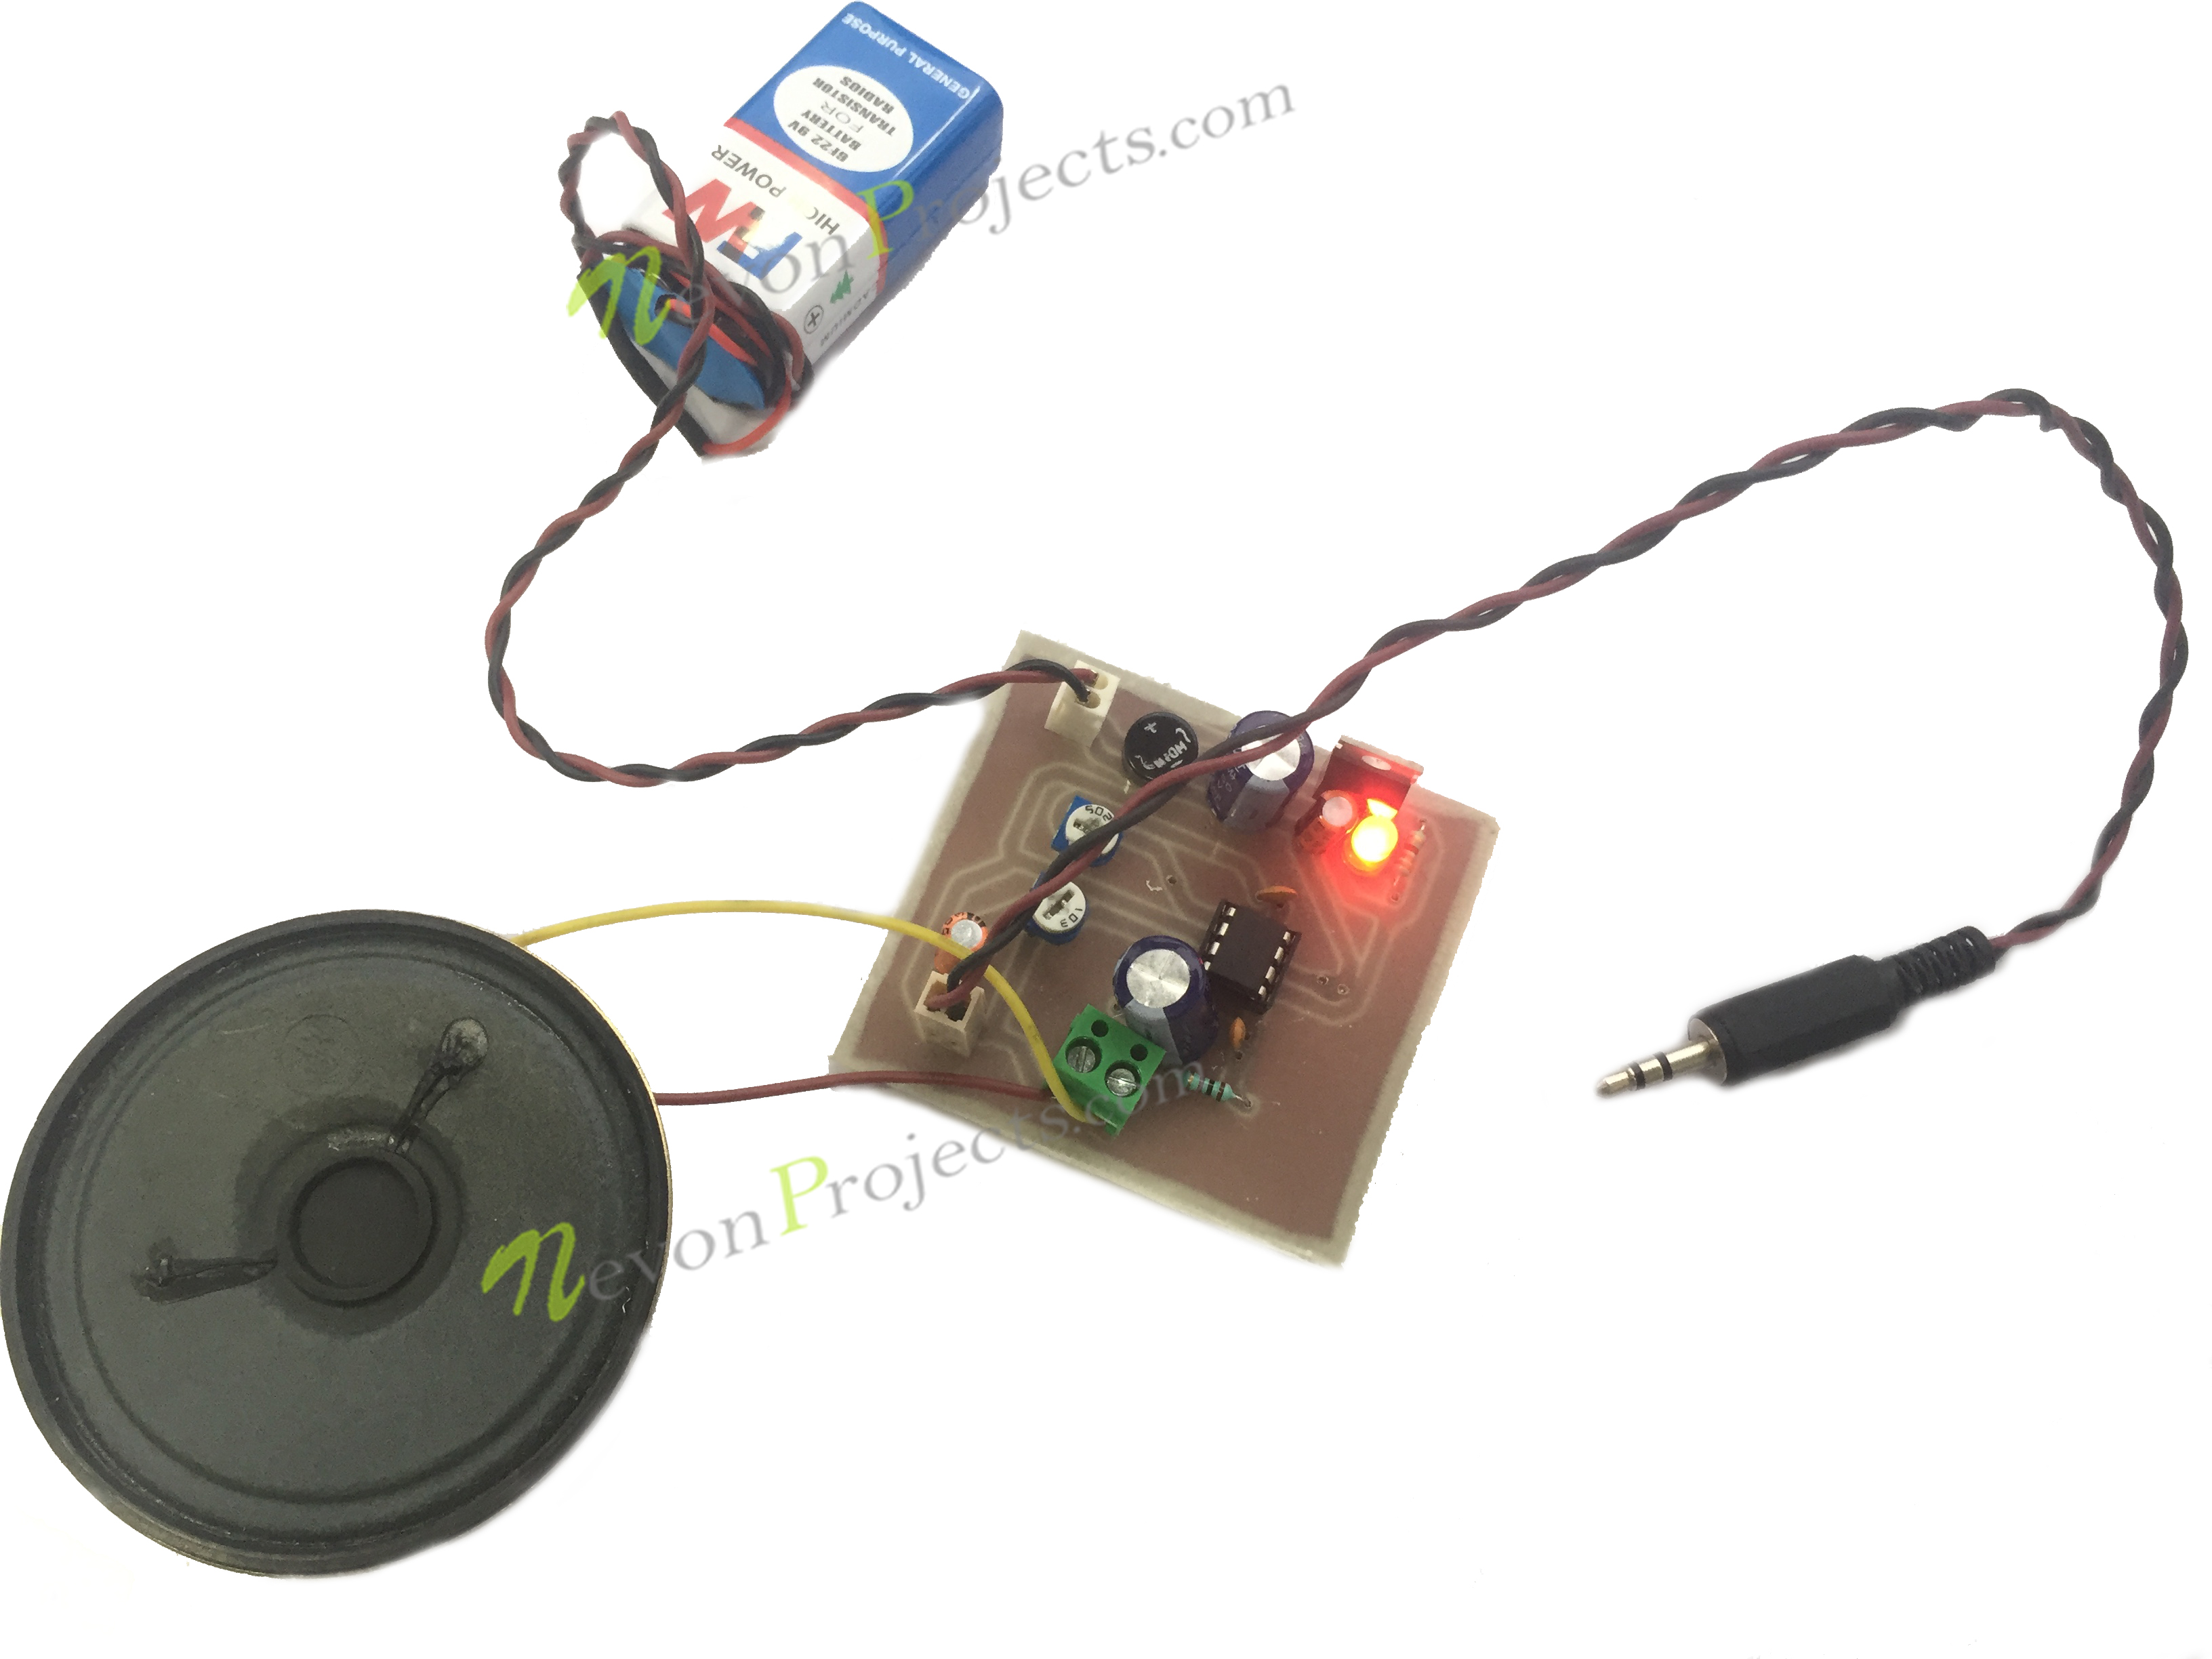 Mini Audio Amplifier Project Electronics Engineering Projects Ides For Students With